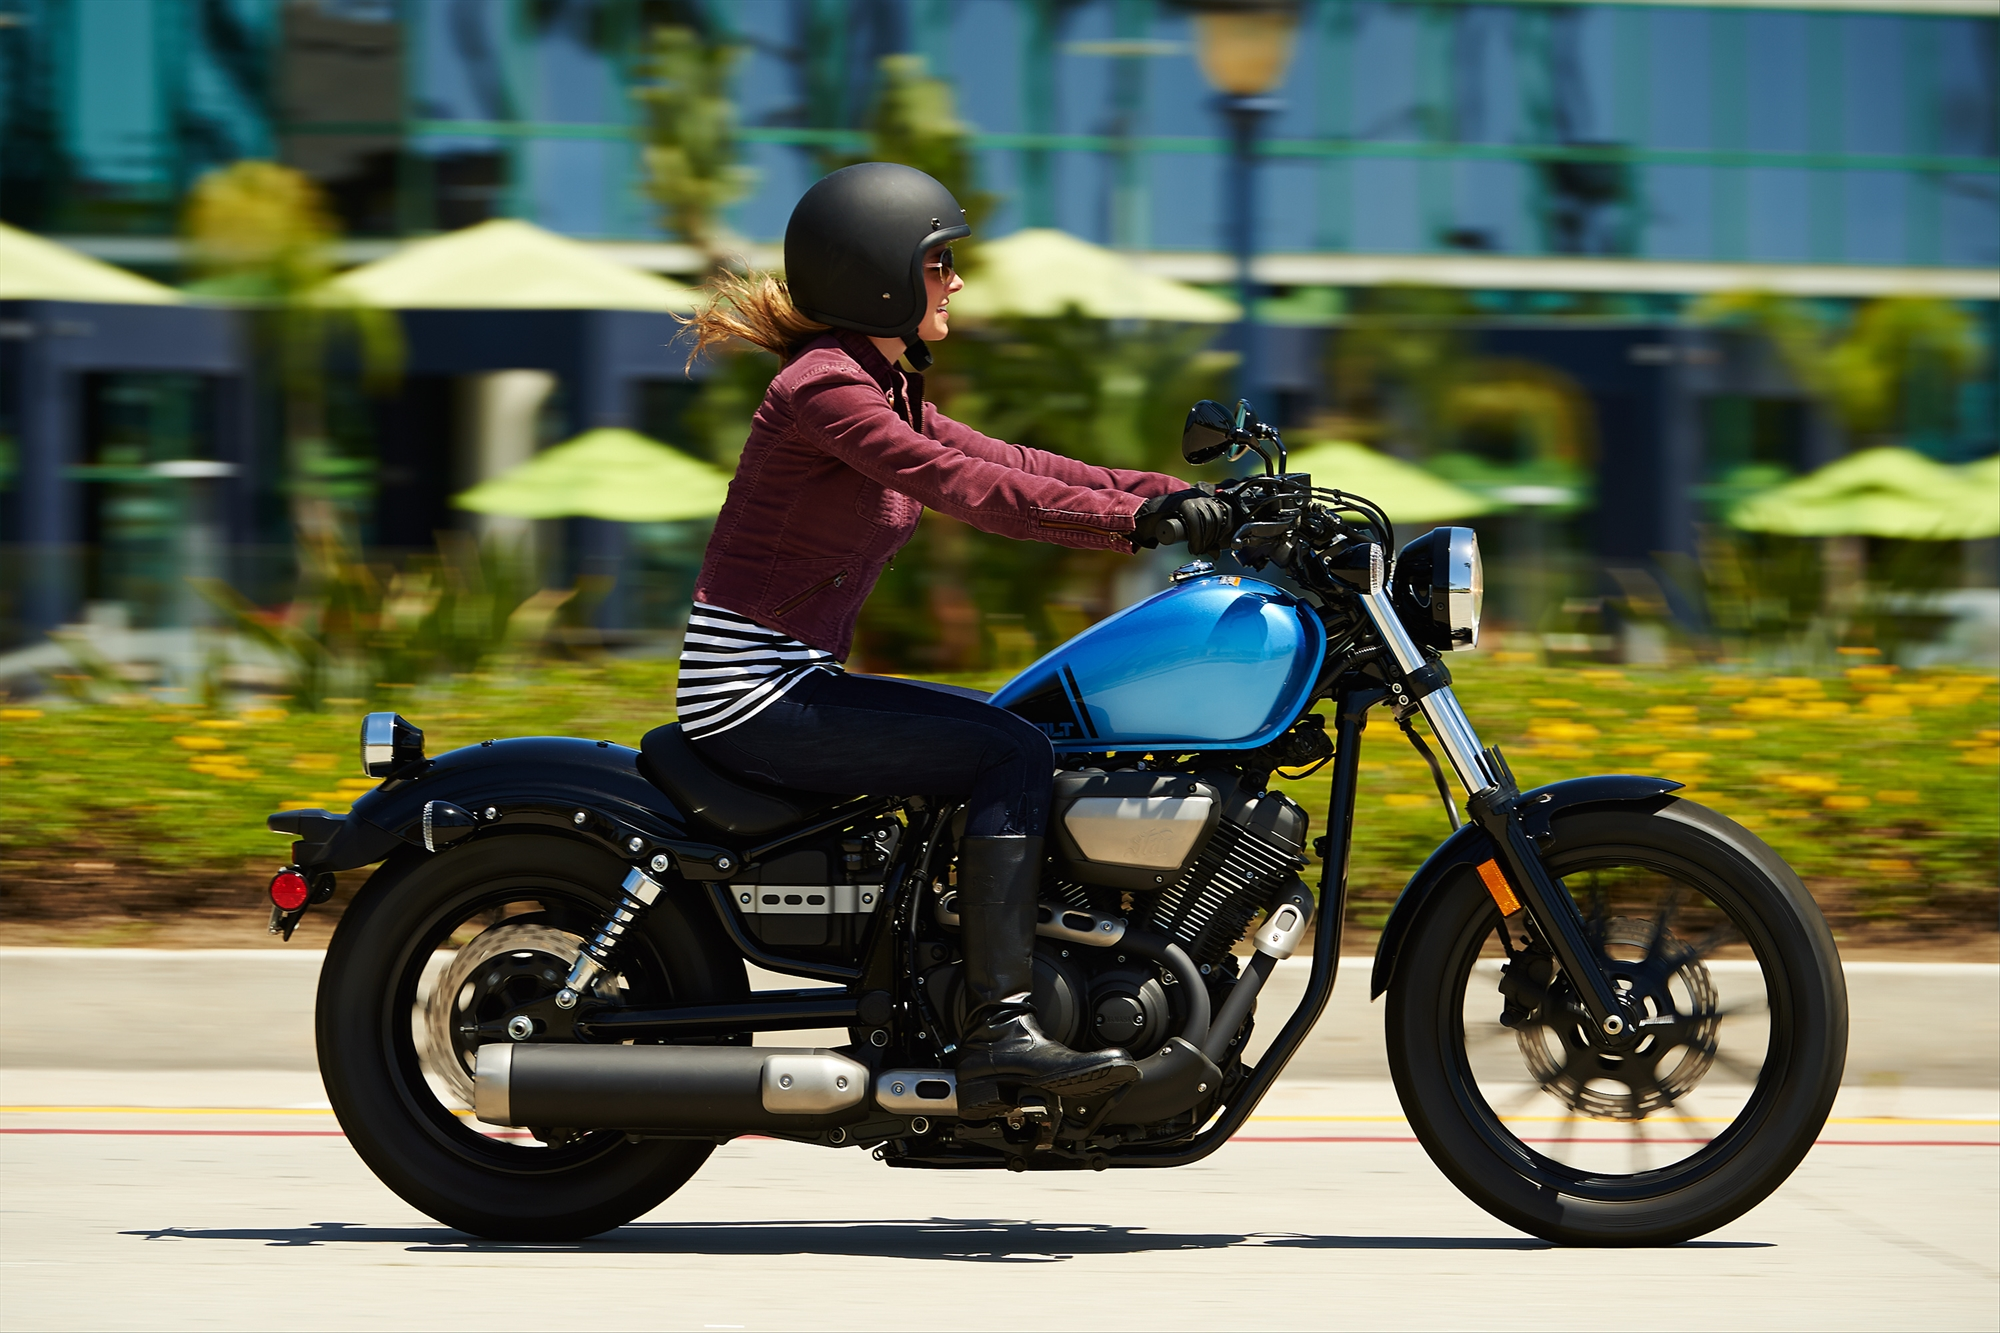 Bmw R Ninet >> 2015 Star Bolt Revealed, Shows What Old-School Excellence Means - autoevolution